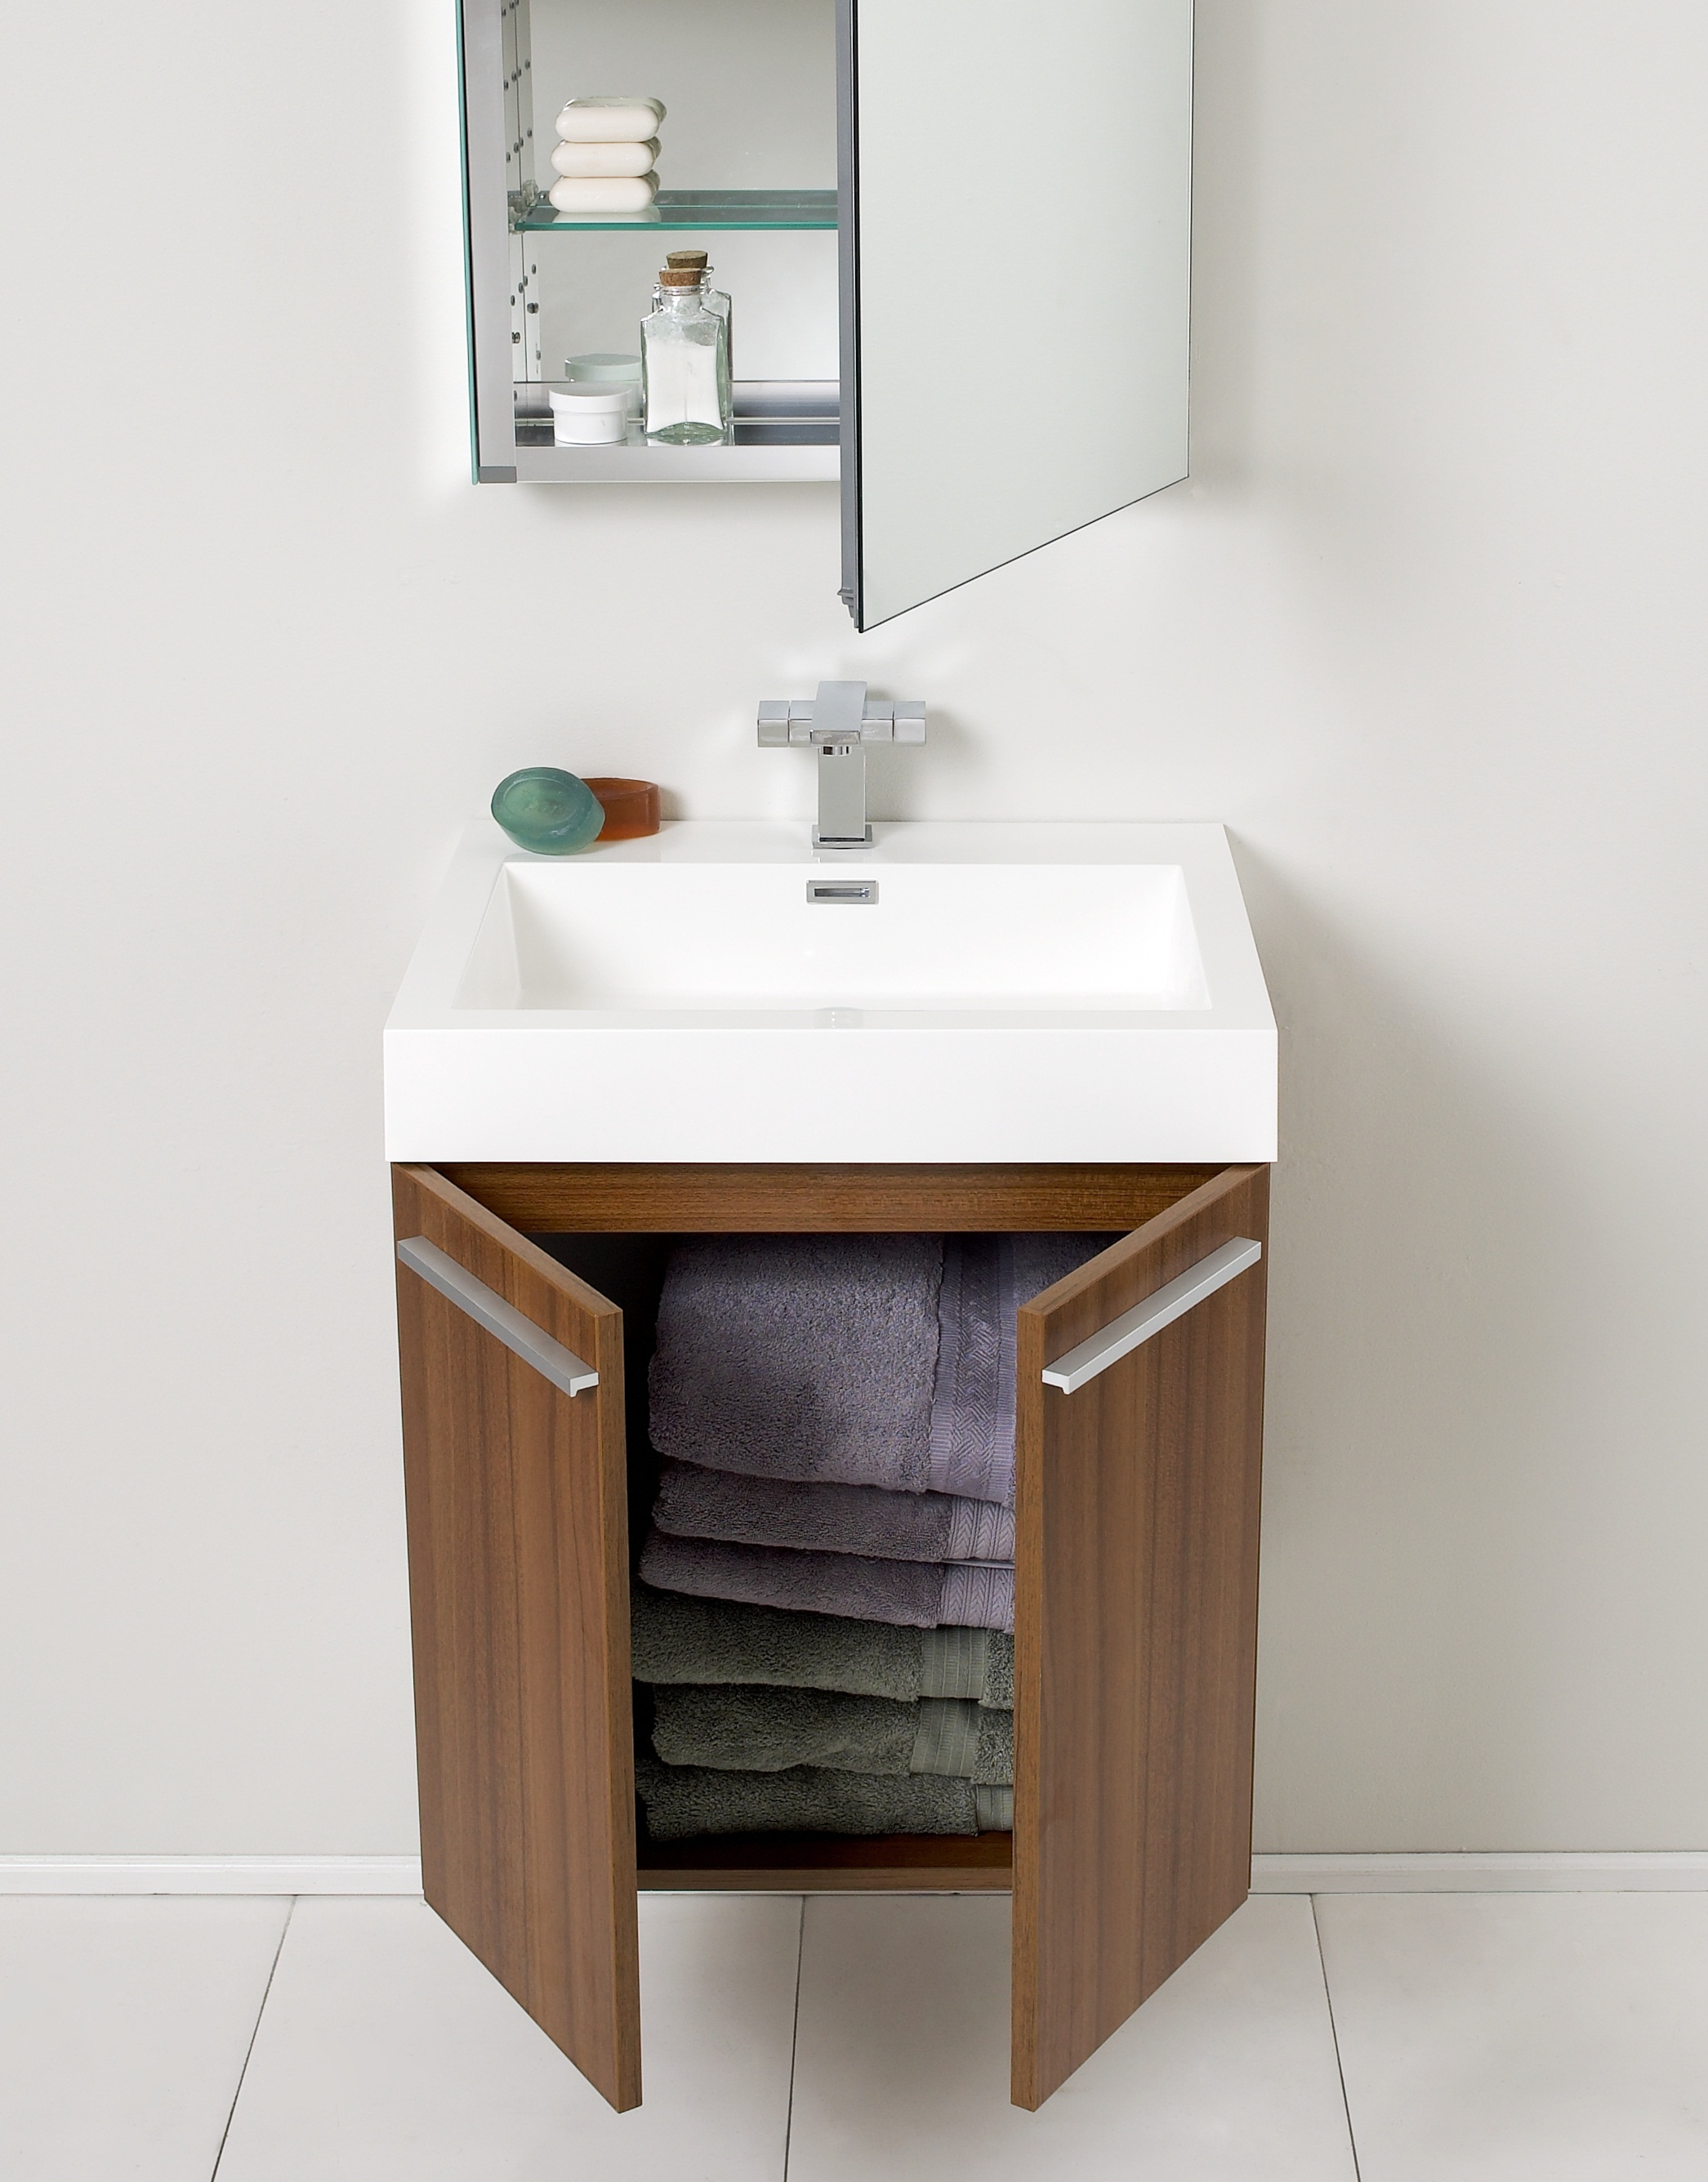 small bathroom vanity cabinets - Bathroom Cabinets Small